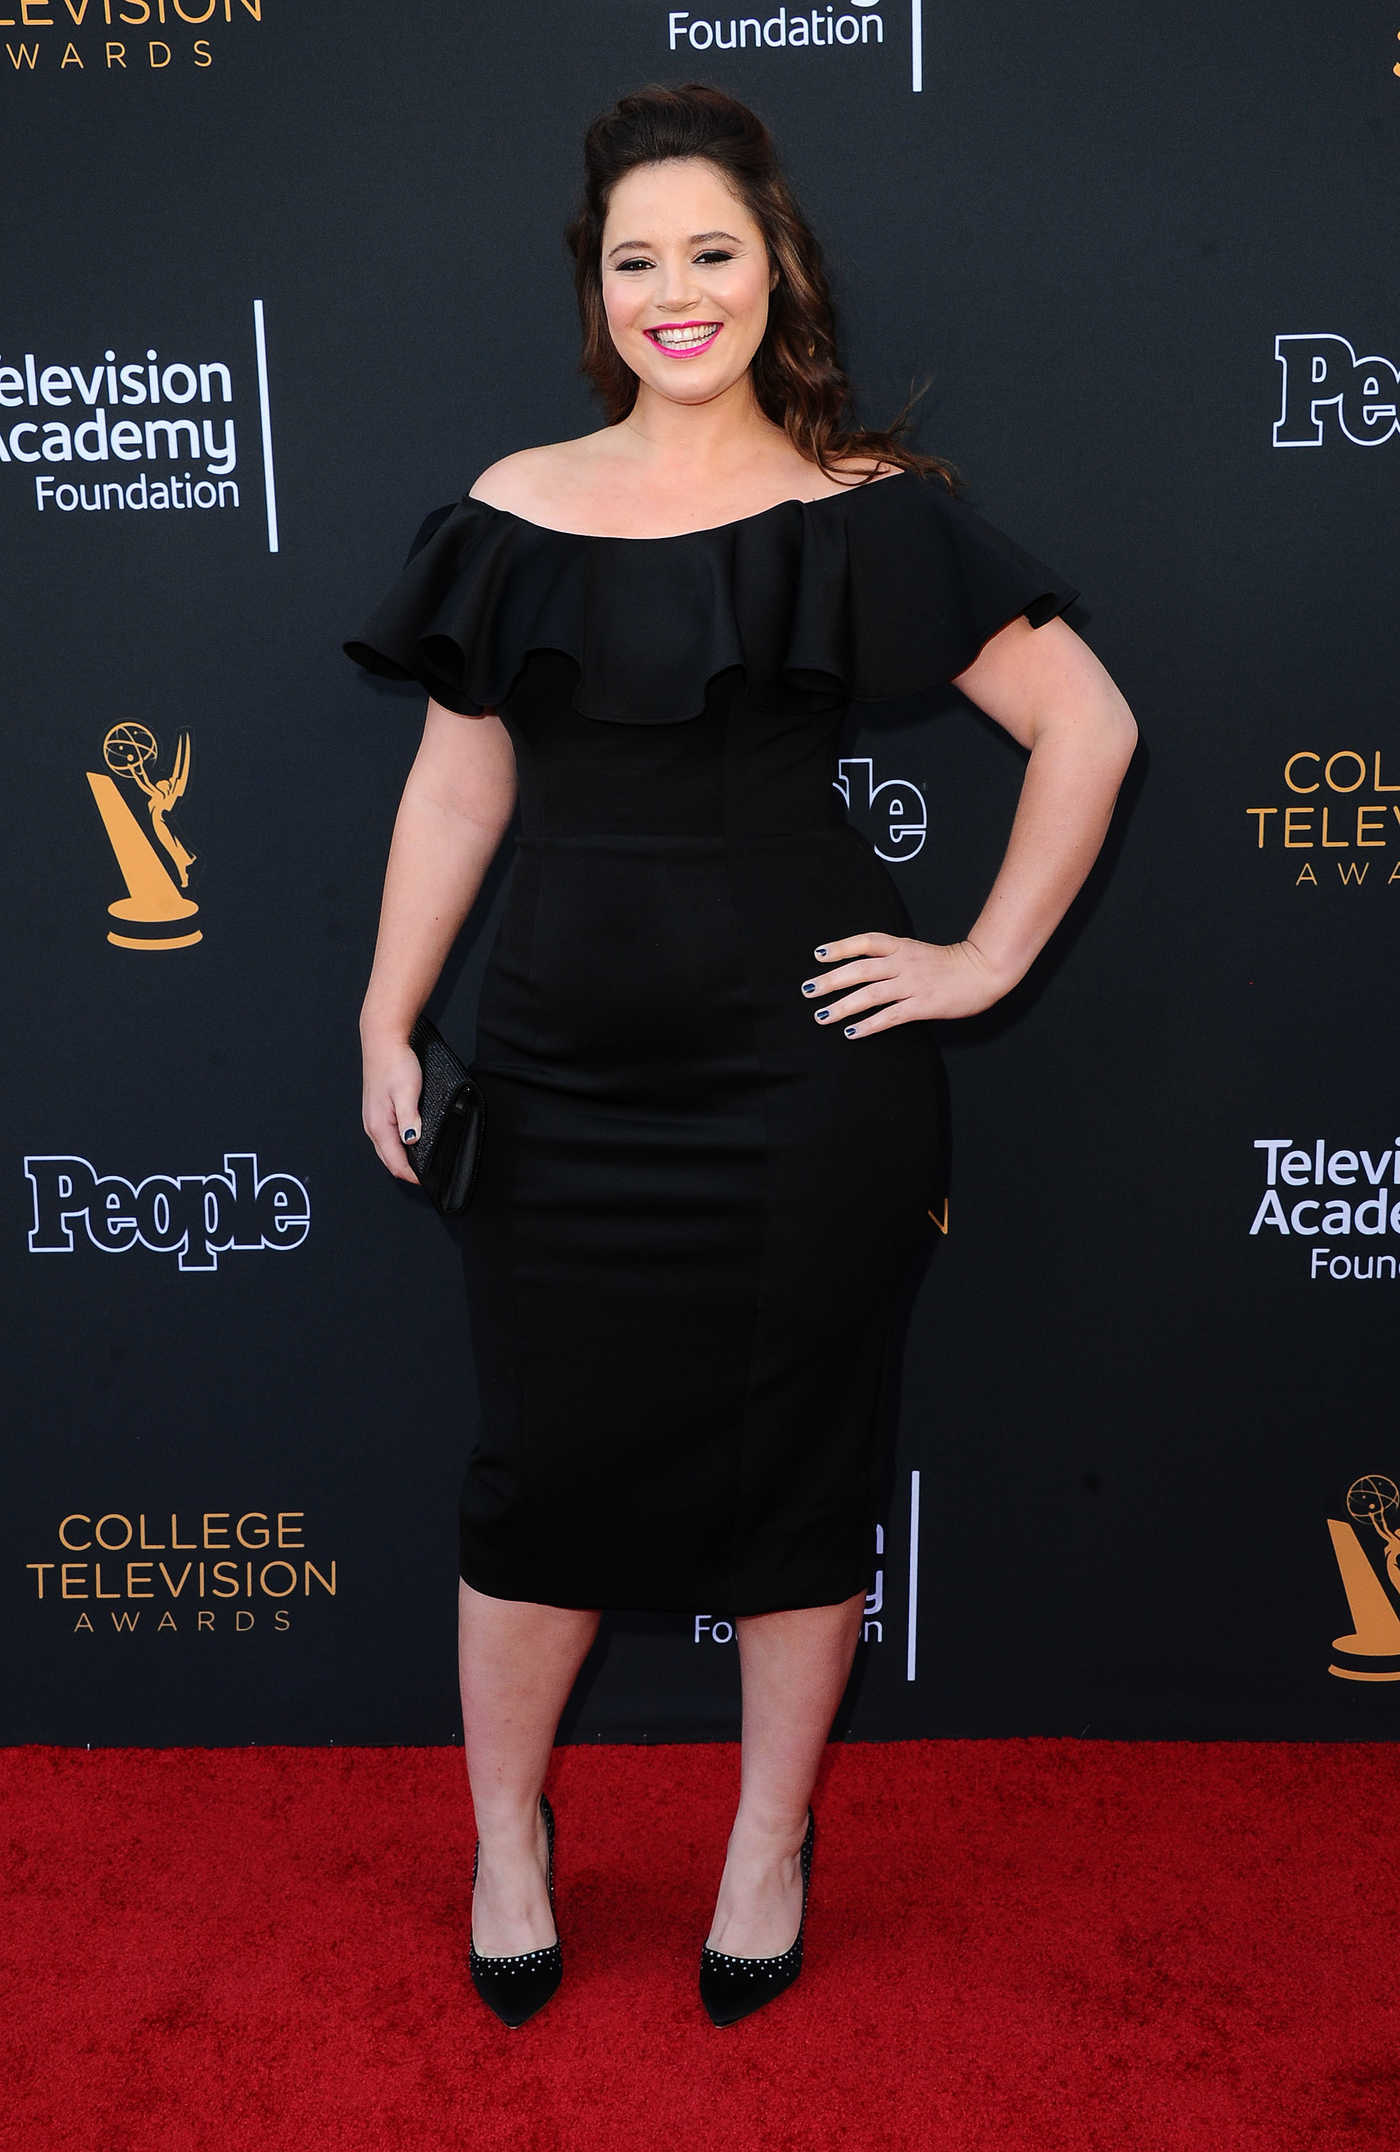 Kether Donohue at the 38th Annual College Television Awards in Los Angeles 05/24/2017